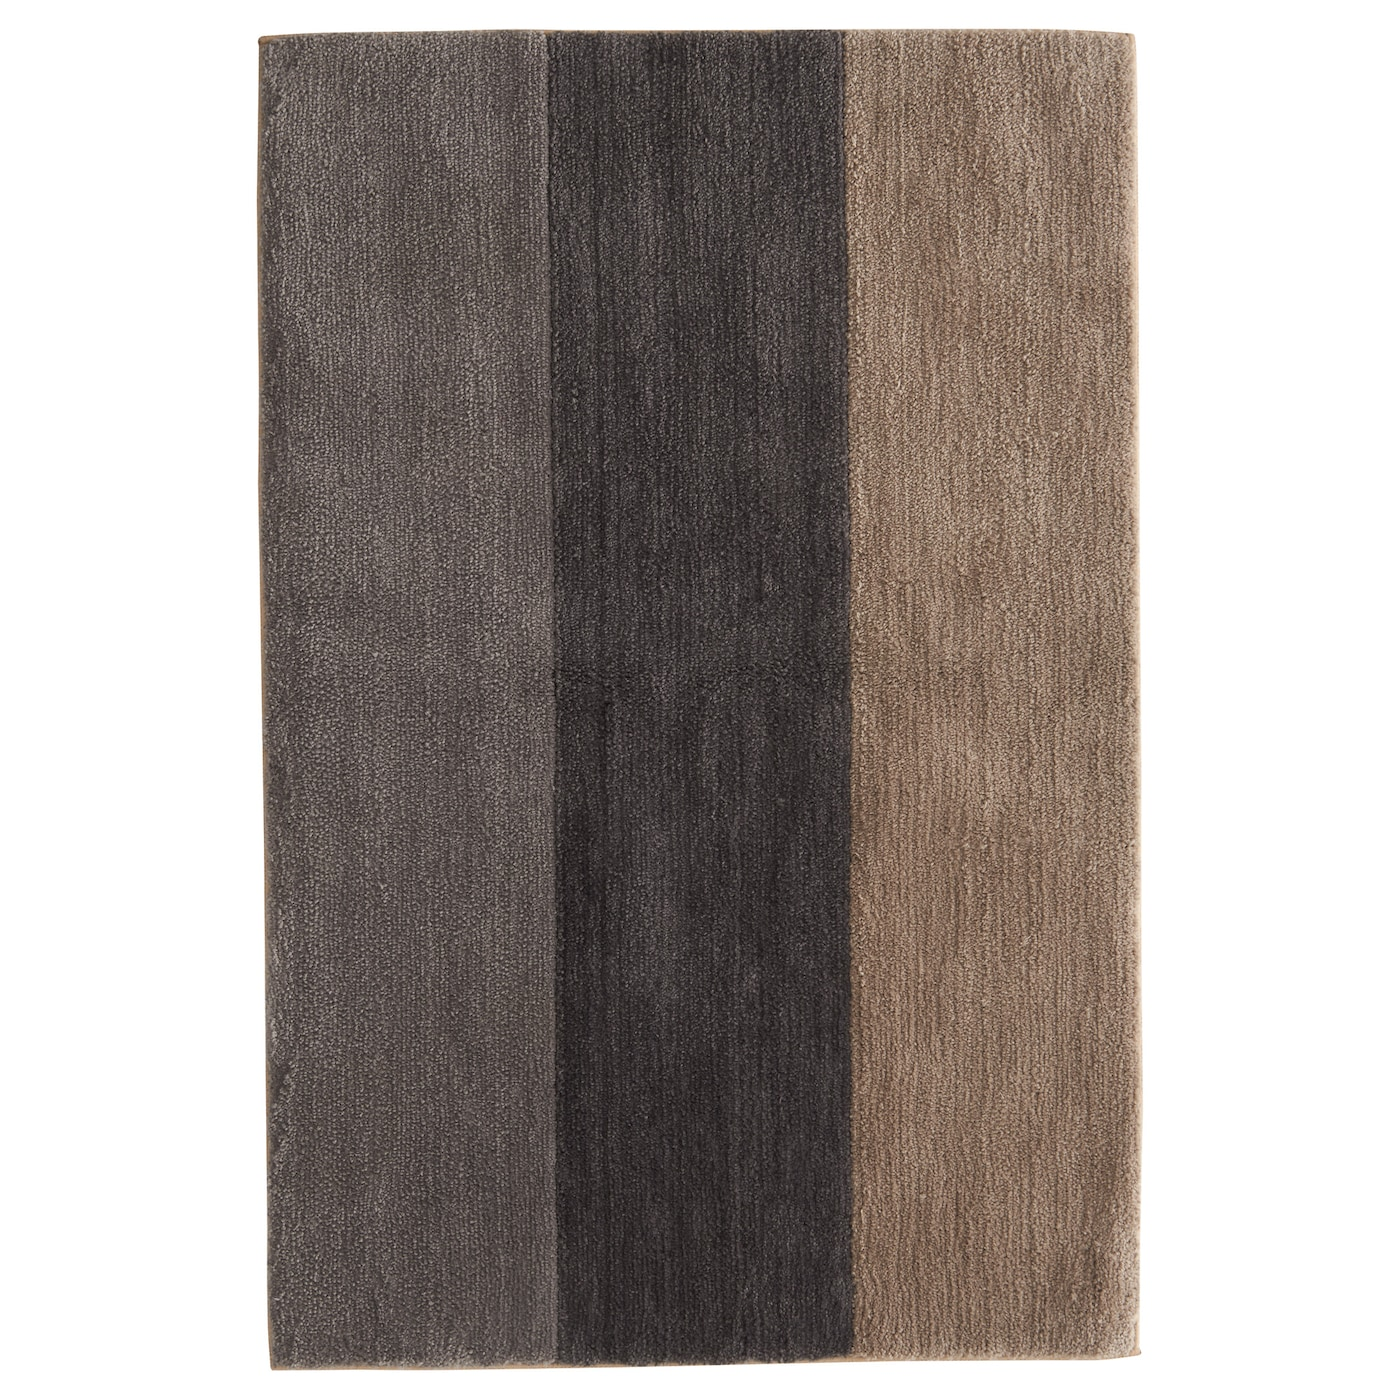 barvalla tapis de bain multicolore 60x90 cm ikea. Black Bedroom Furniture Sets. Home Design Ideas